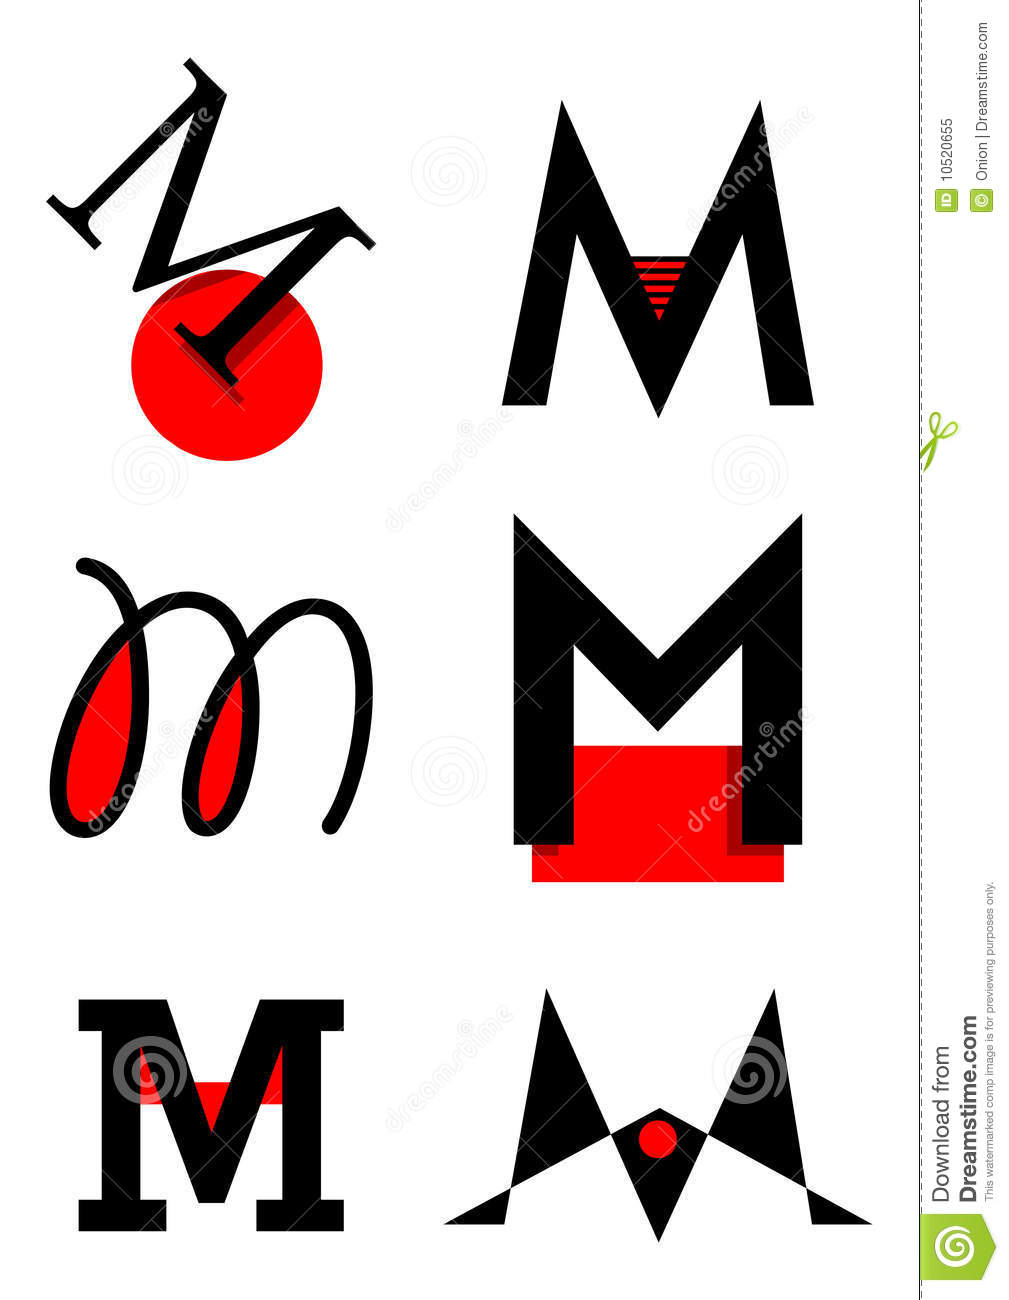 letter m logo royalty free stock photos image 22214578 vector alphabet m logos and icons stock vector image 623